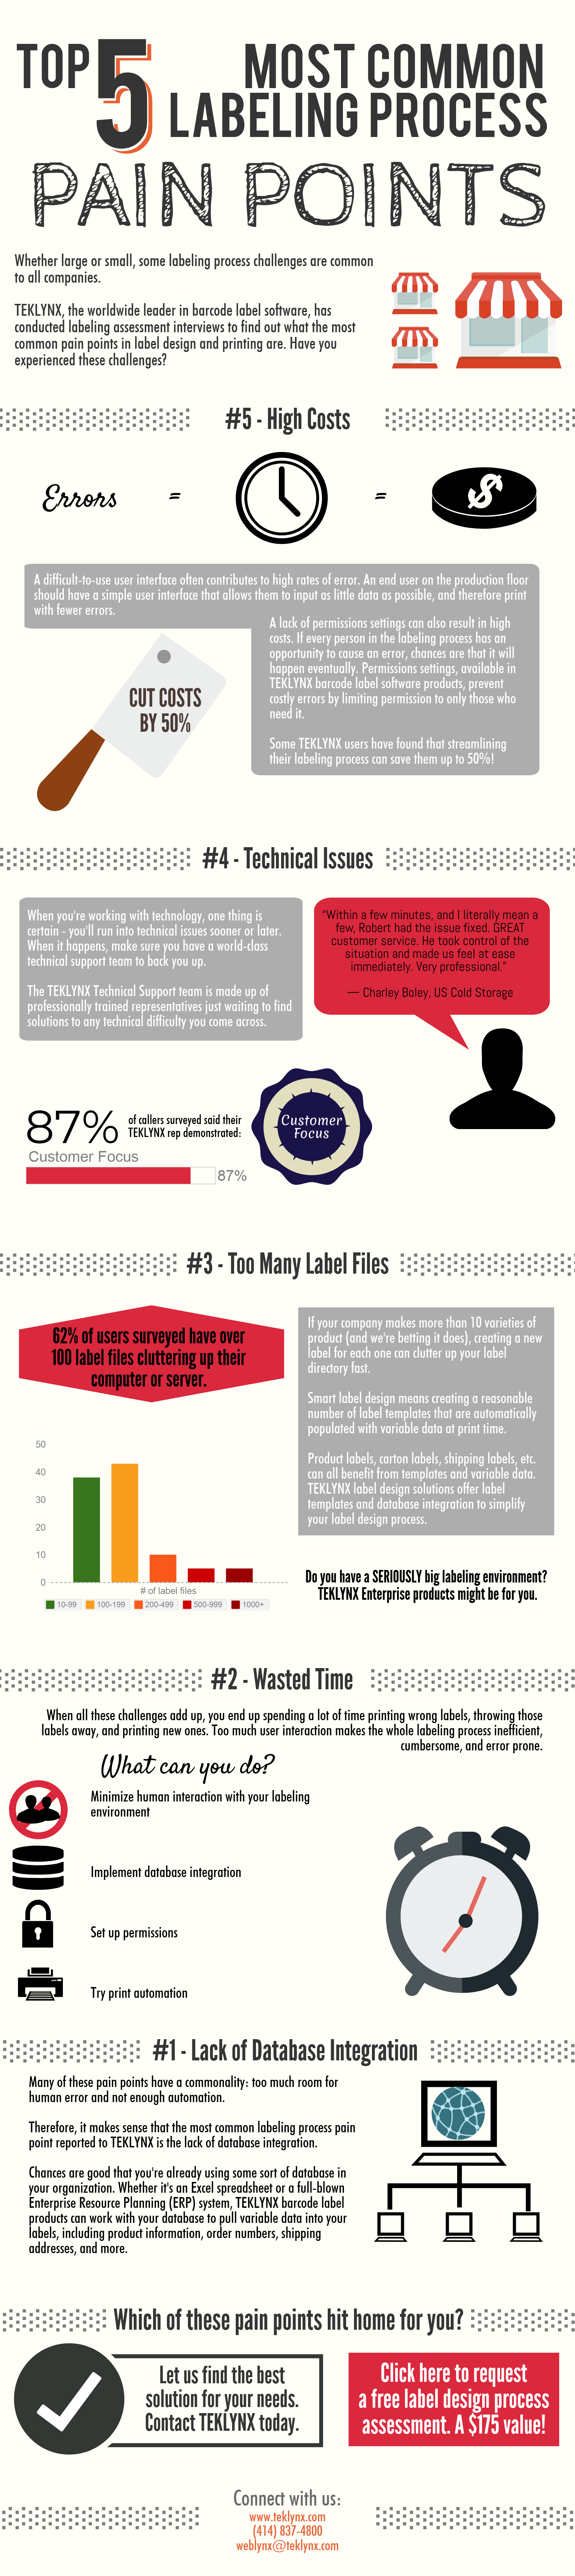 Free Infographic on the Top 5 Most Common Labeling Process Pain Points